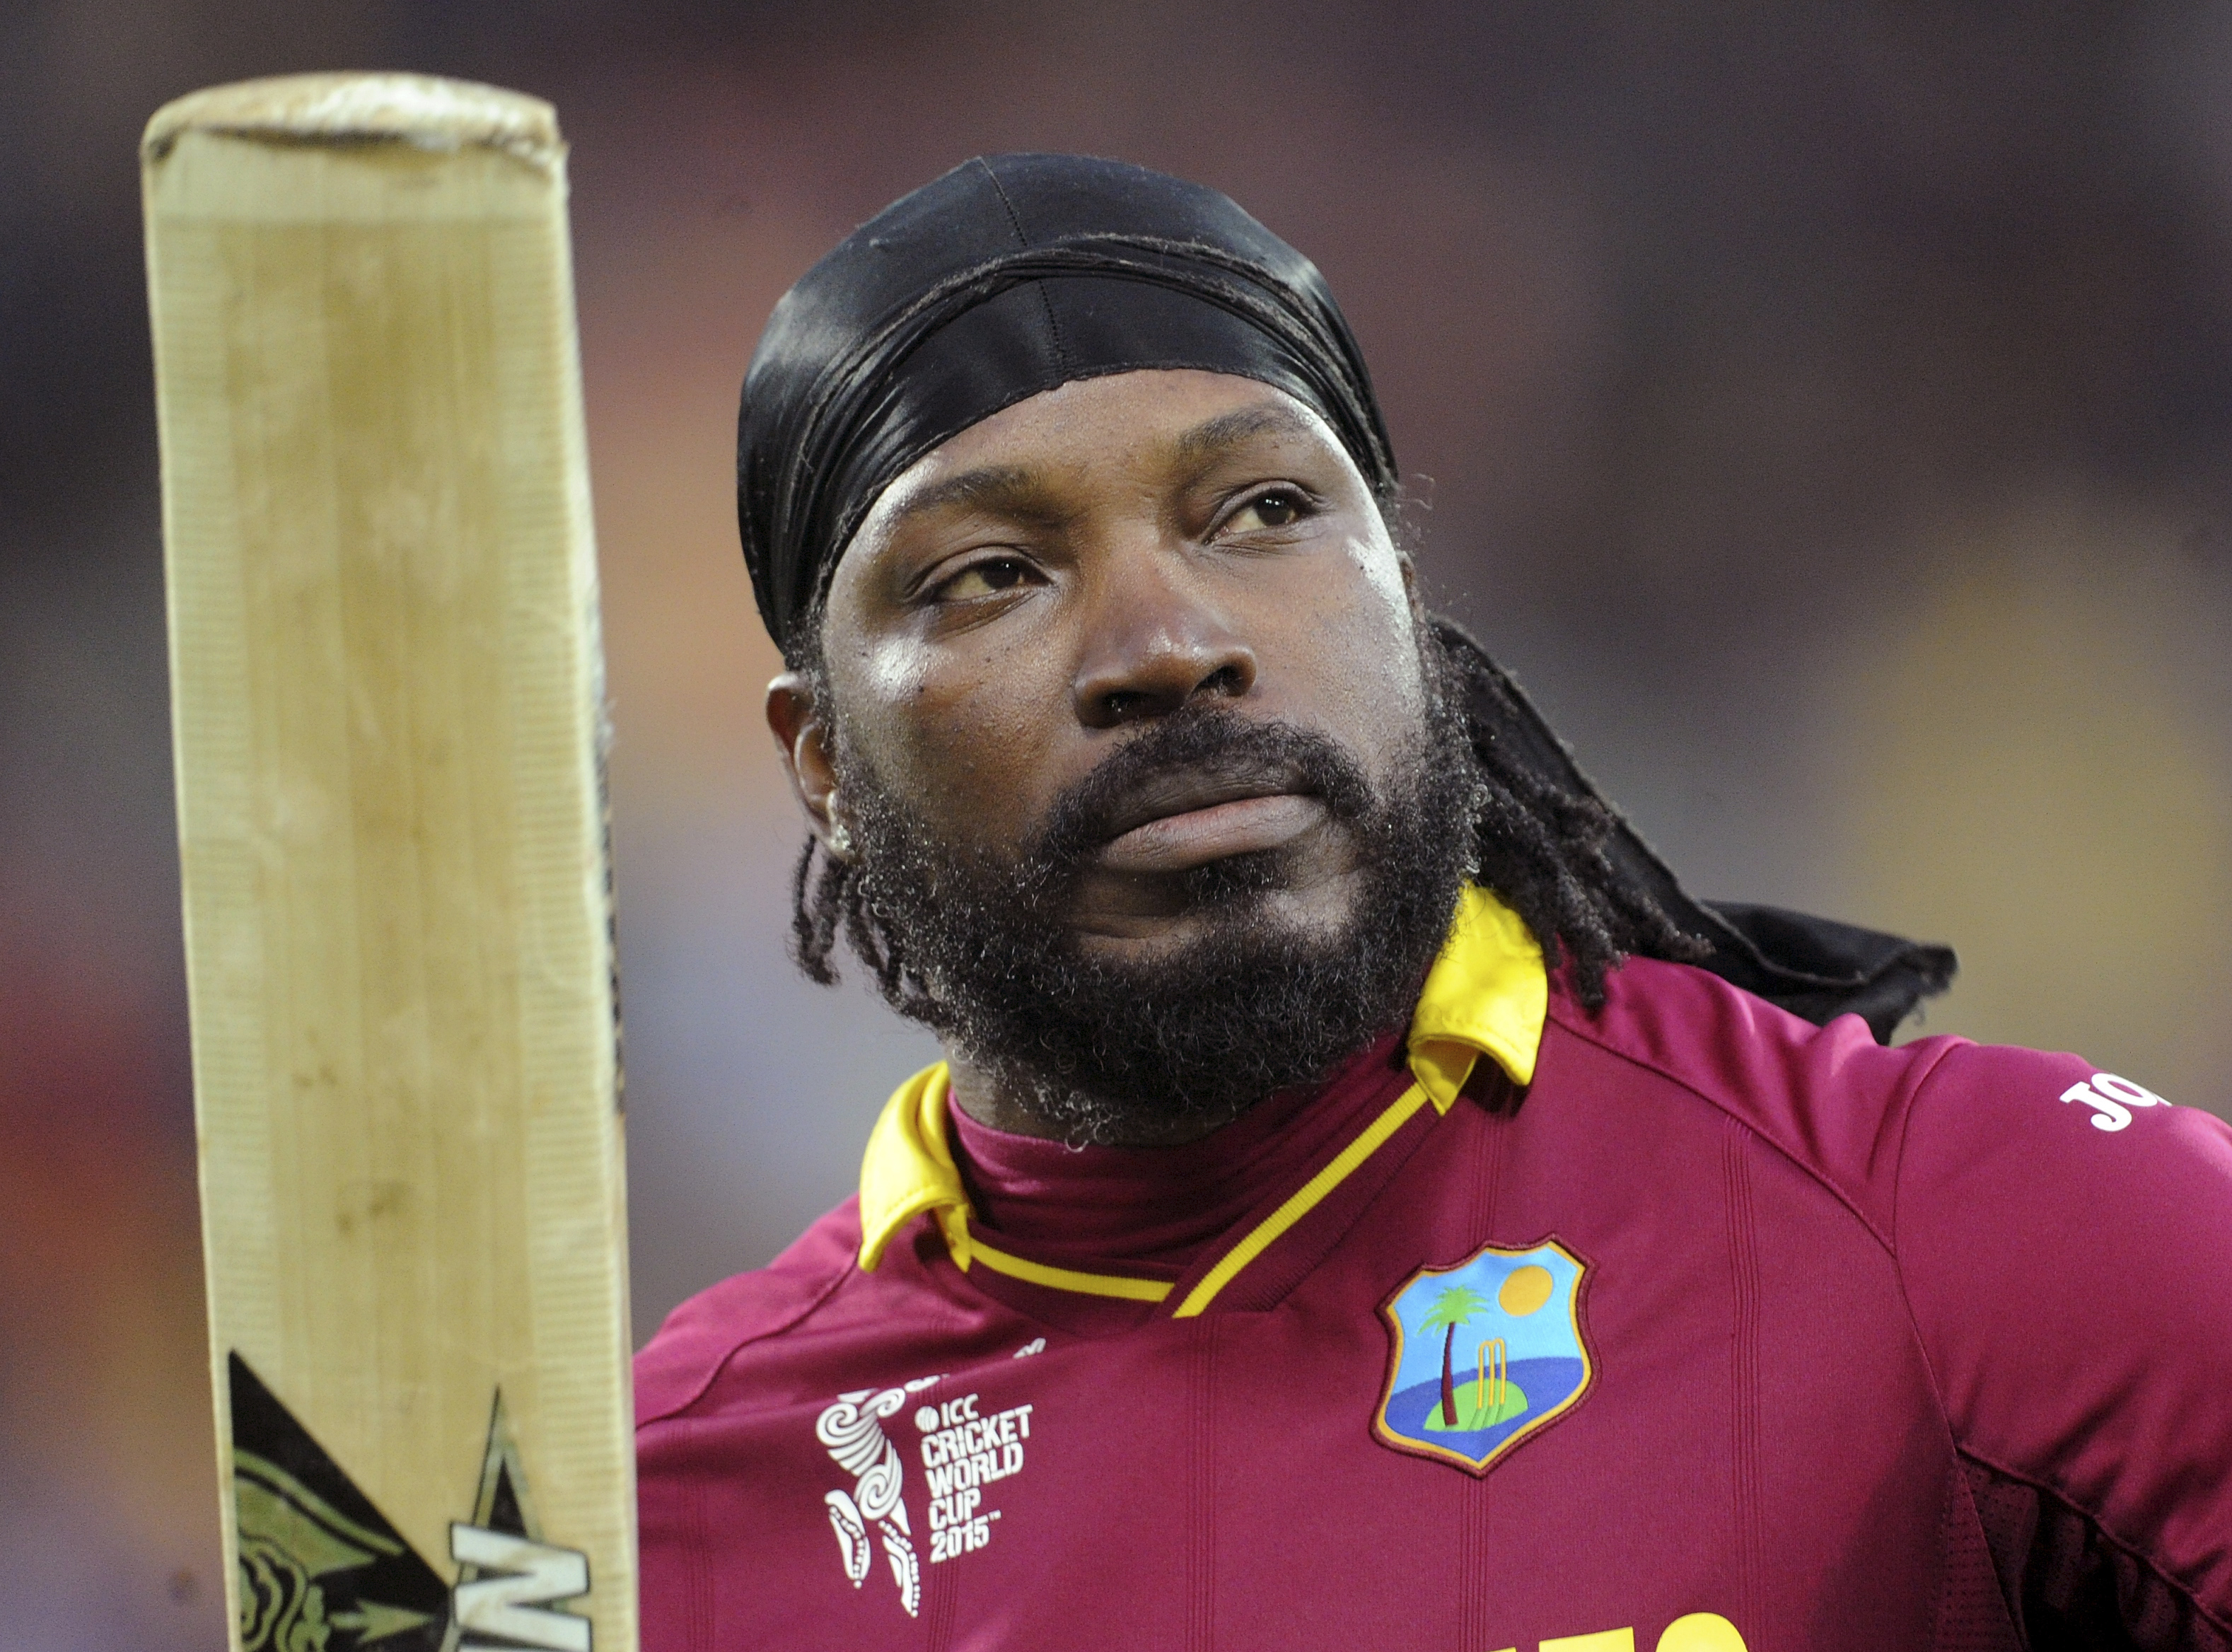 FILE - In this March 21, 2015 file photo, West Indies Chris Gayle waves his bat to the crowd as he leaves the field after he was dismissed for 61 runs while batting against New Zealand during their Cricket World Cup quarterfinal match in Wellington, New Zealand. Photo: AP